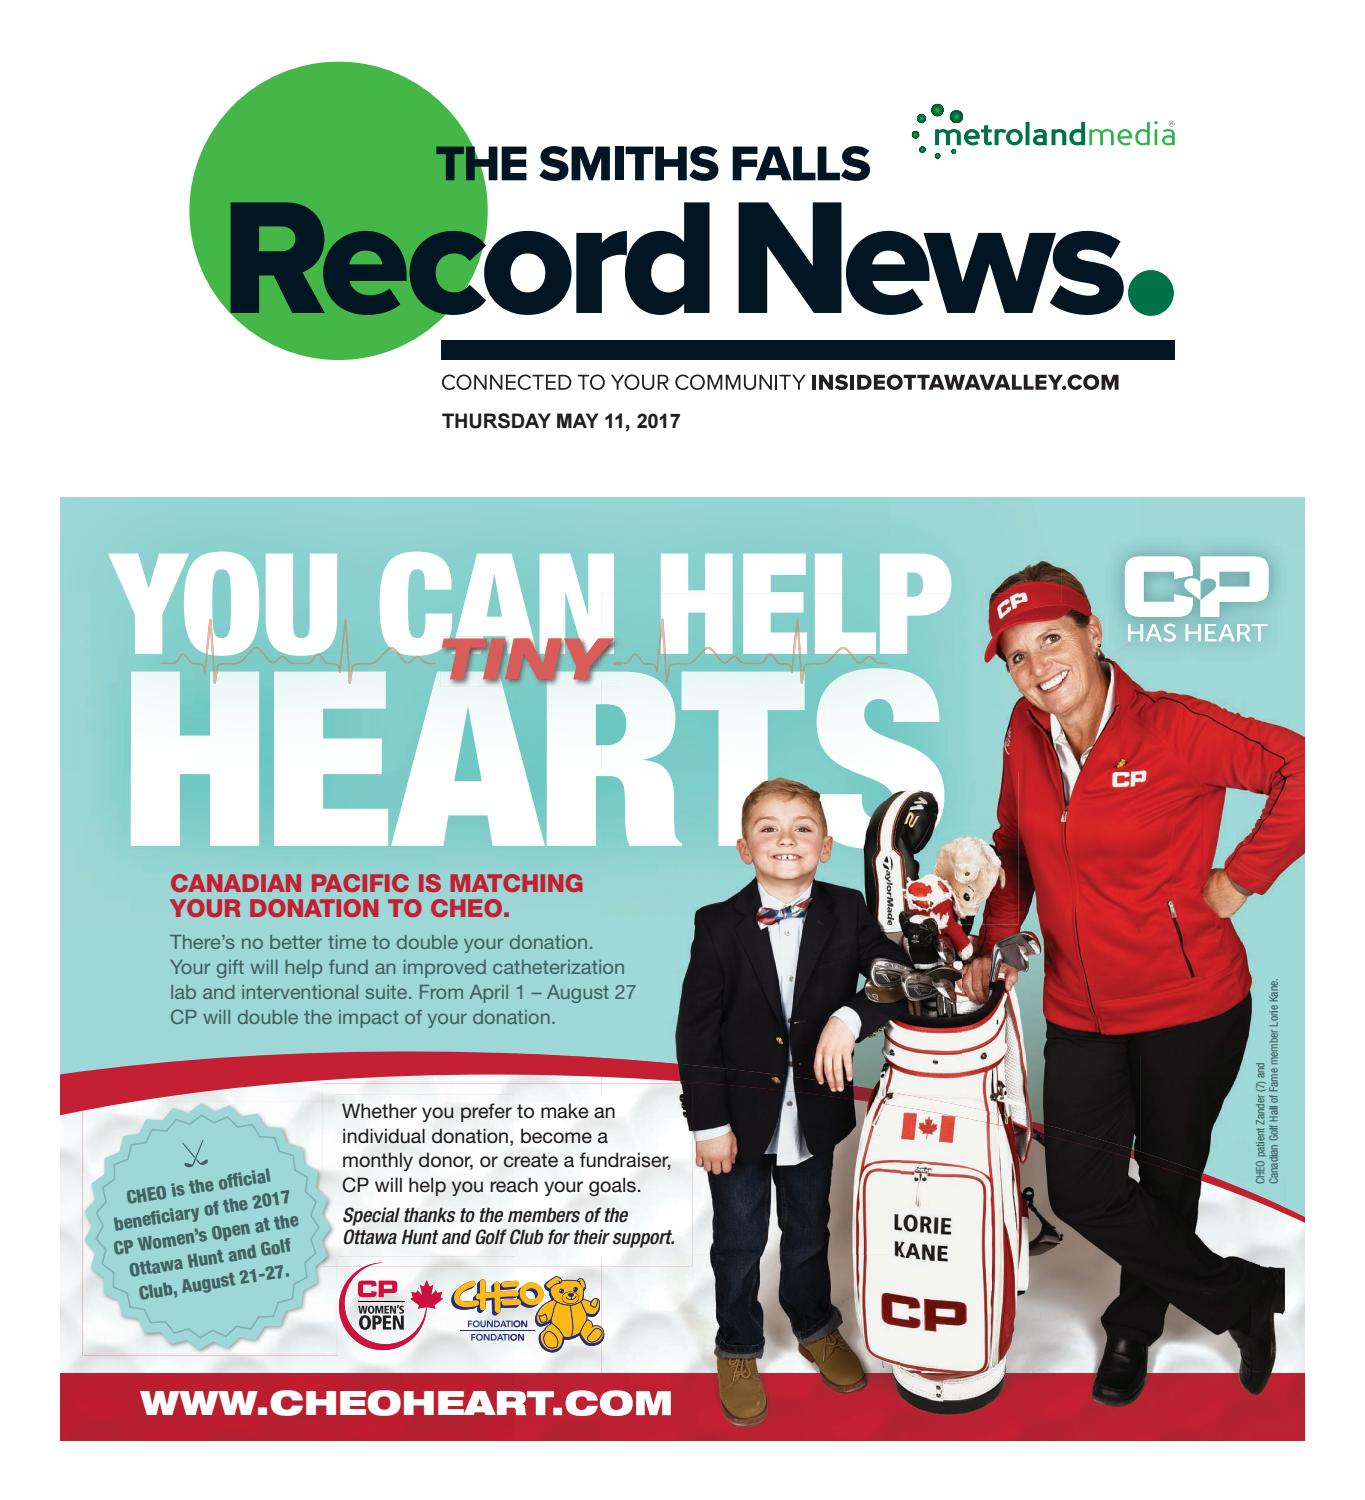 Smithsfalls051117 by Metroland East - Smiths Falls Record